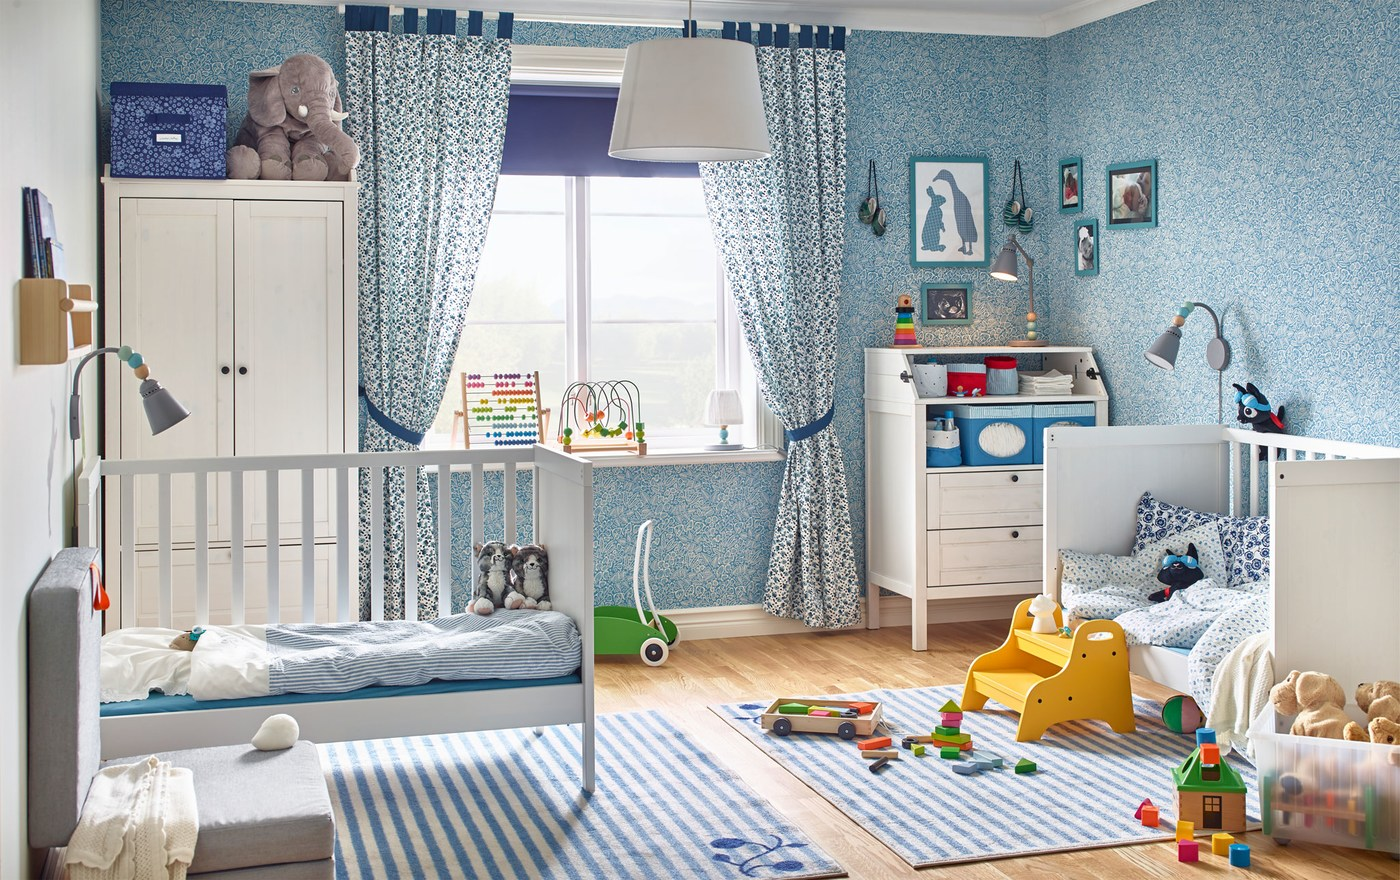 A blue themed baby bedroom with two IKEA SUNDVIK white cots, an IKEA SUNDVIK changing table and a white wardrobe.